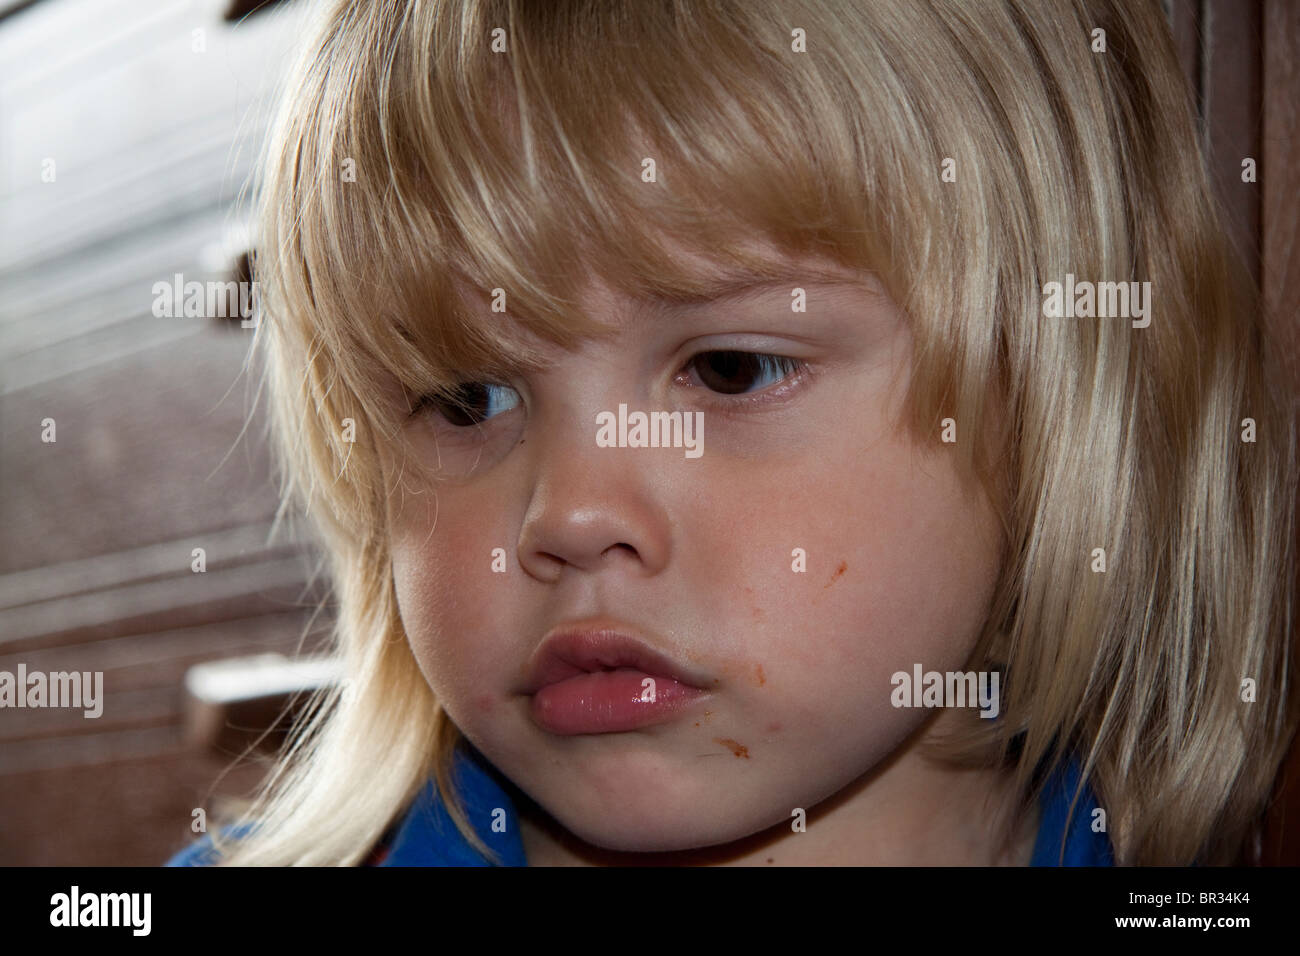 Boy with long blonde hair and a dirty face sulking - Stock Image